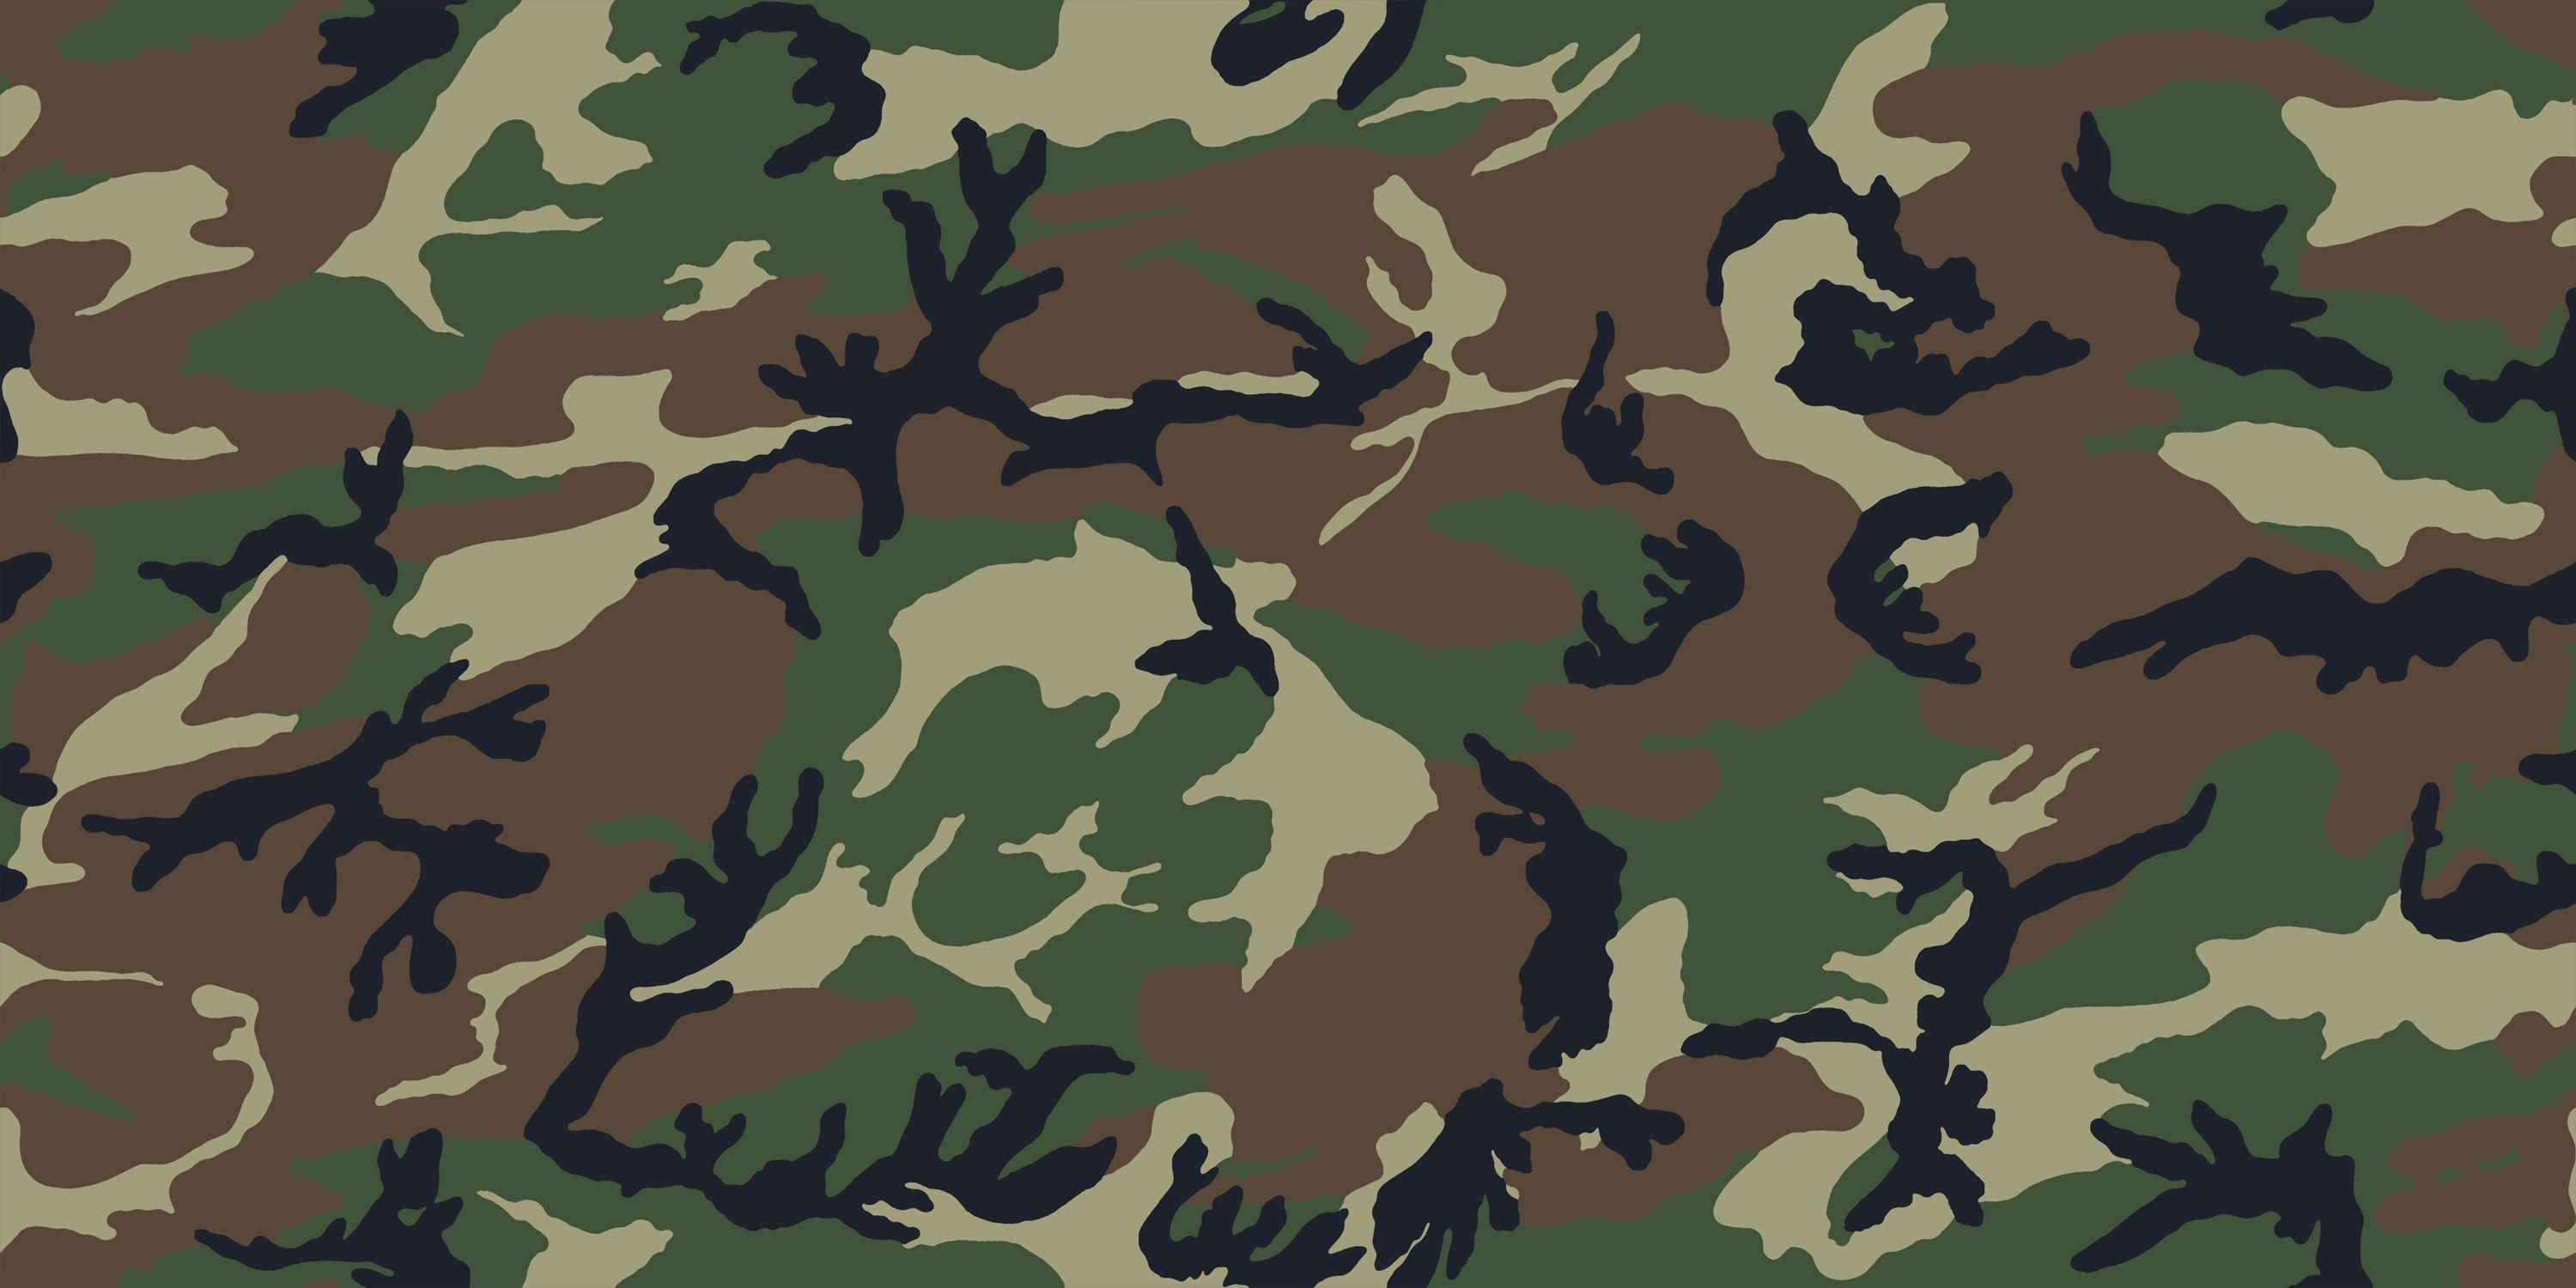 Camouflage Wallpapers For Phones 49 Wallpapers Hd Wallpapers Camouflage Wallpaper Camo Wallpaper Abstract Art Wallpaper